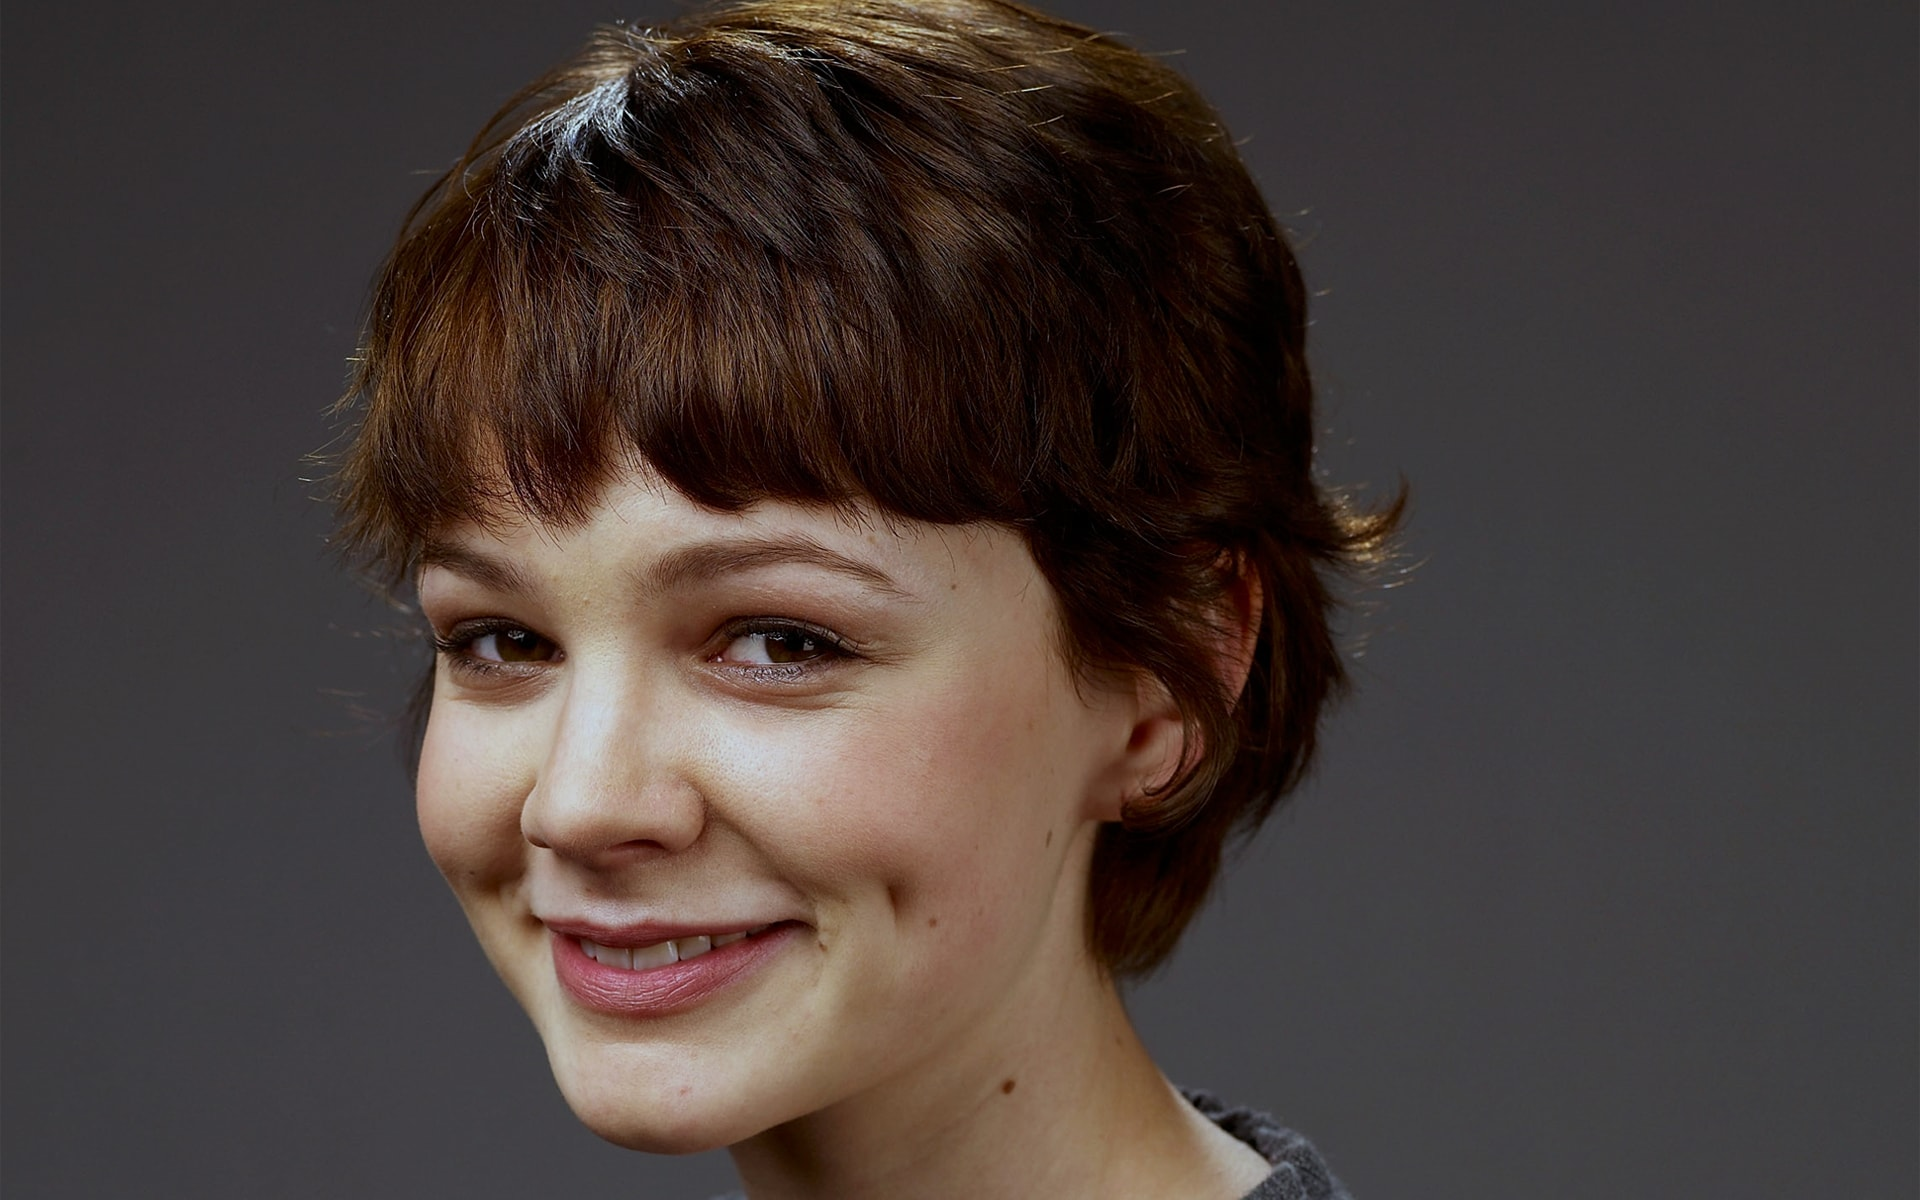 Carey Mulligan Wallpapers hd